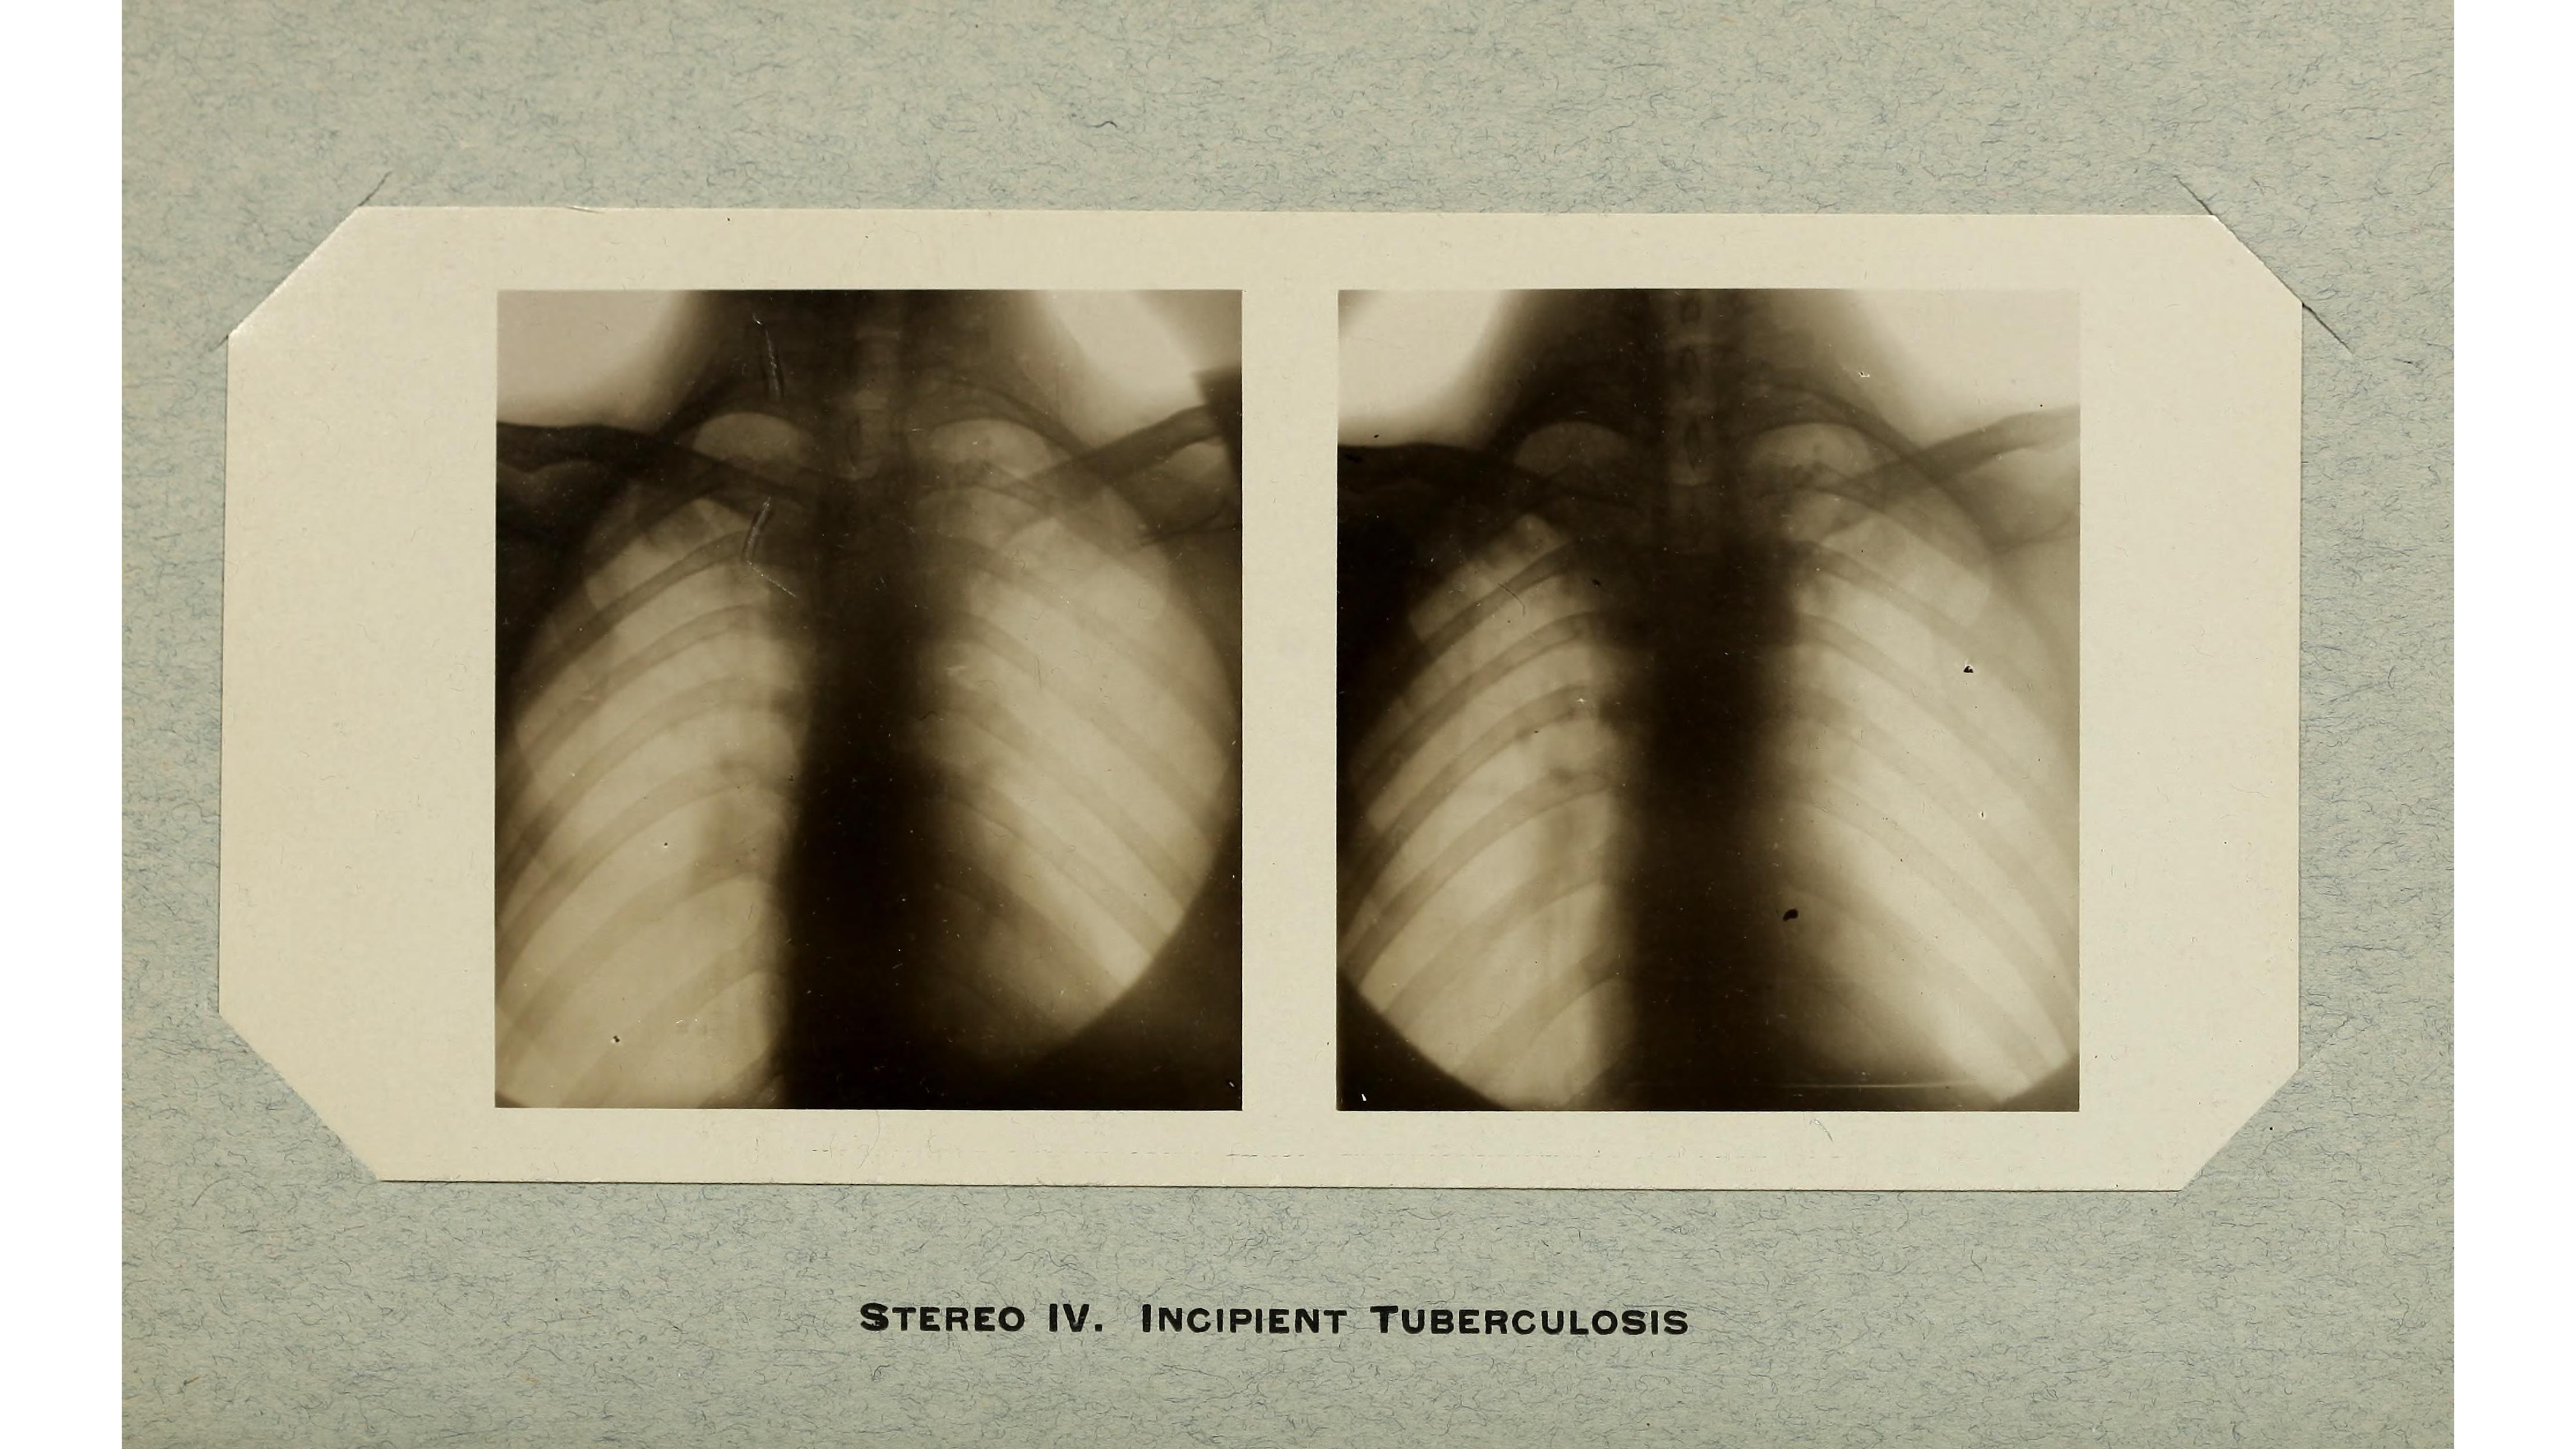 1909 X Ray From The American Quarterly Of Roentgenology Of Tuberculosis Of The Lung